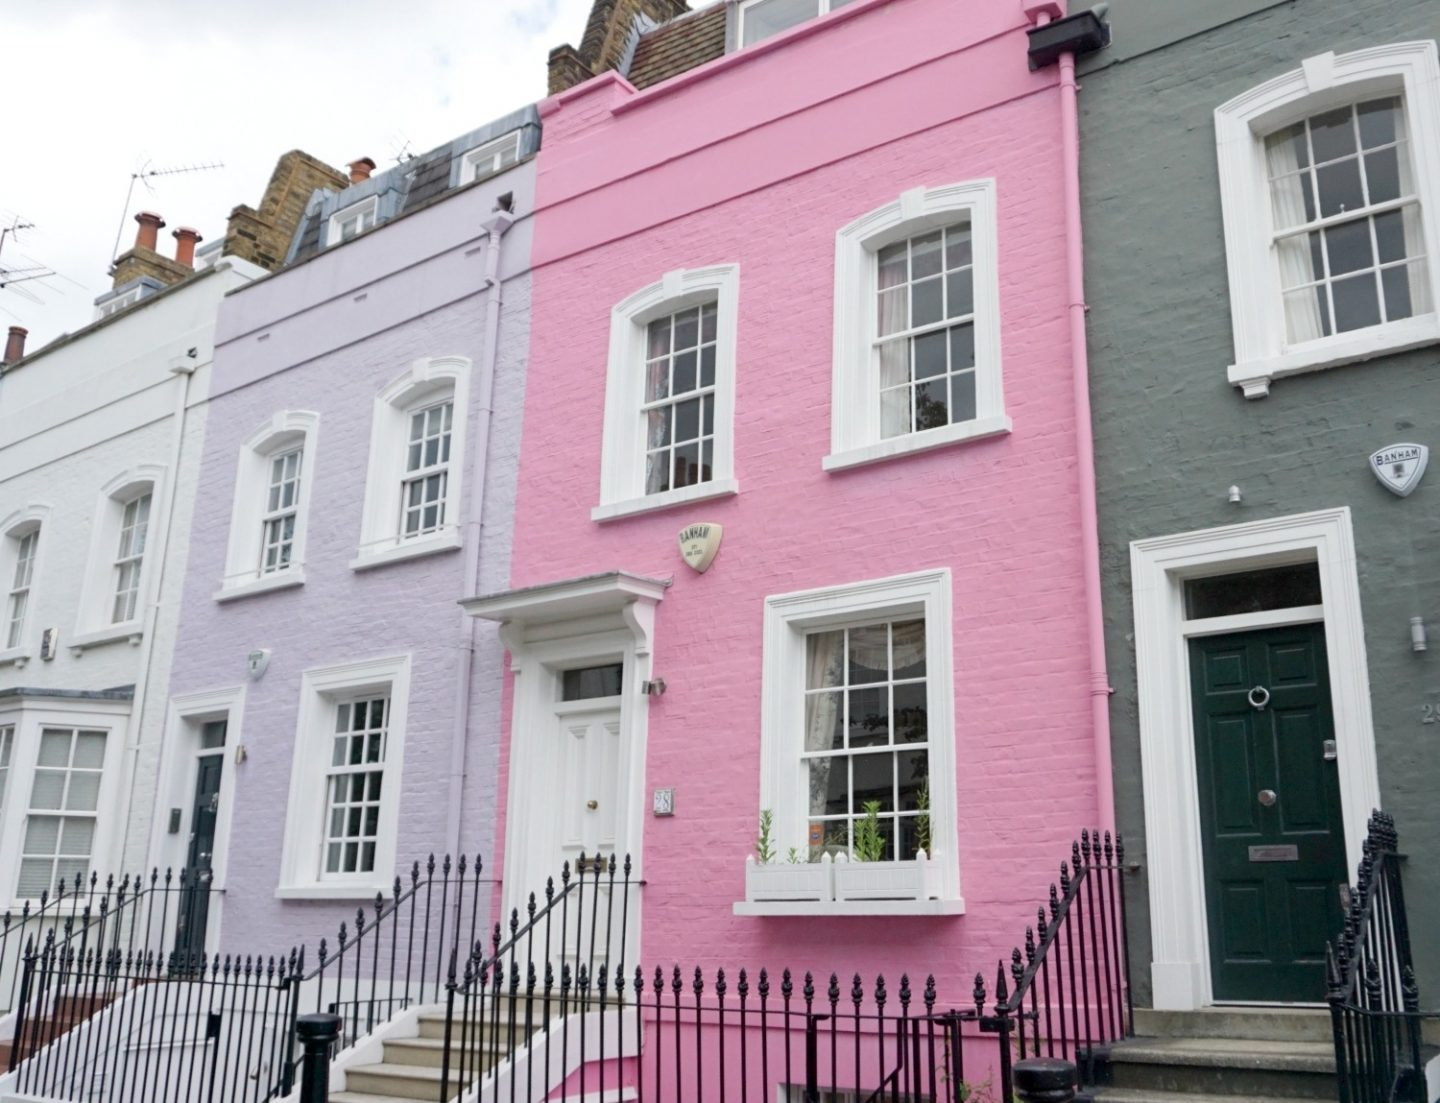 A London Photo Walk And Visions In Pink at Peggy Porschens In Belgravia And Notting Hill www.extraordinarychaos.com